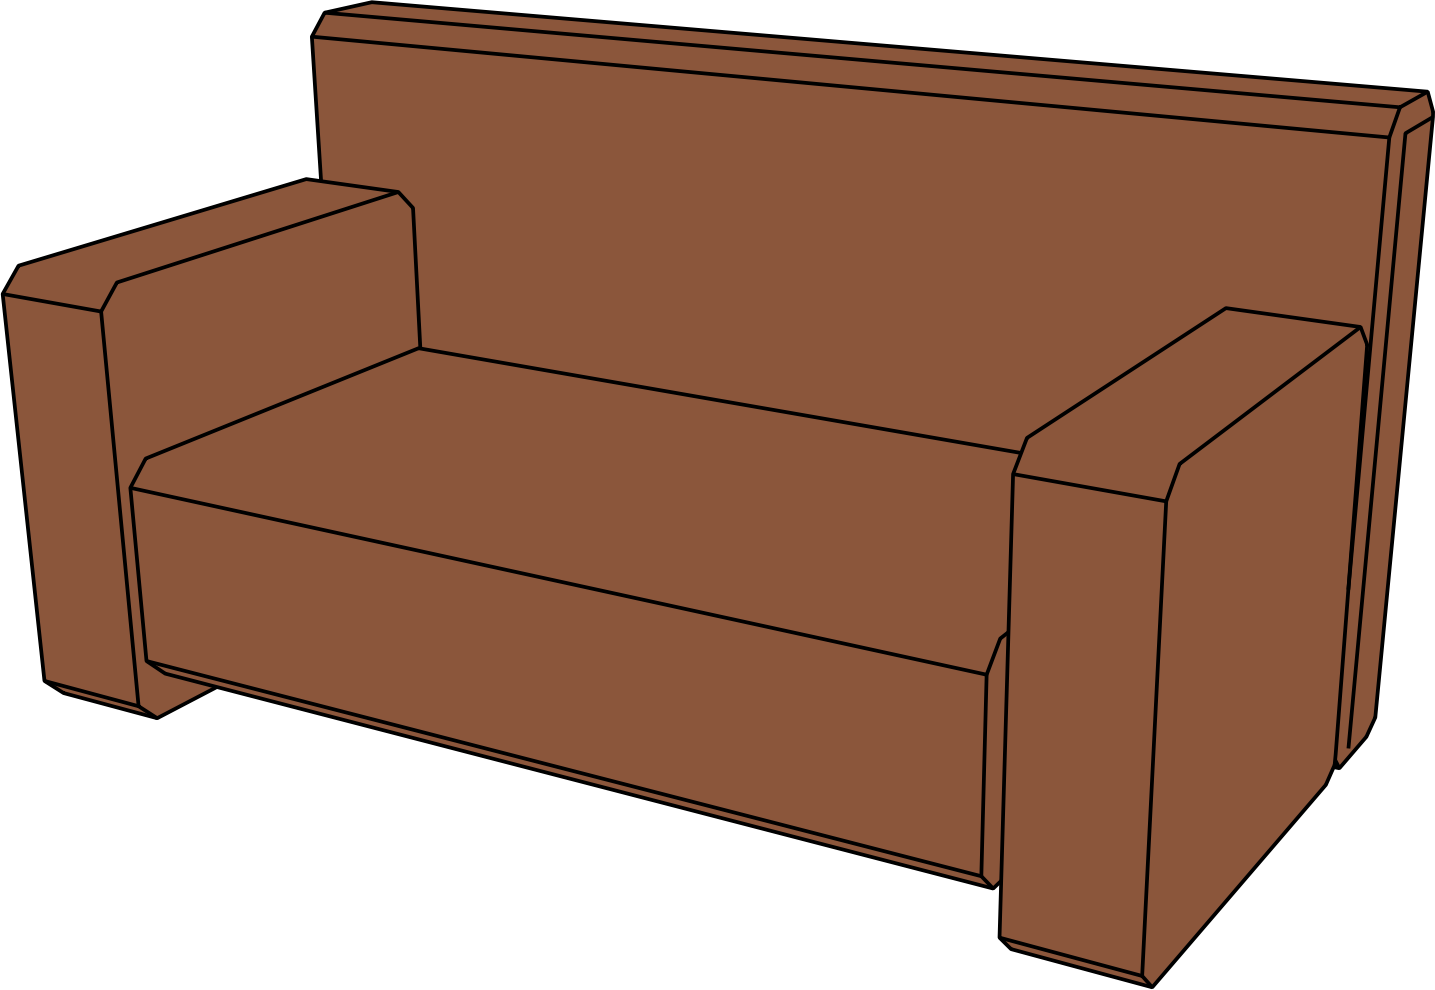 Sofa perspective icons png. Couch clipart svg